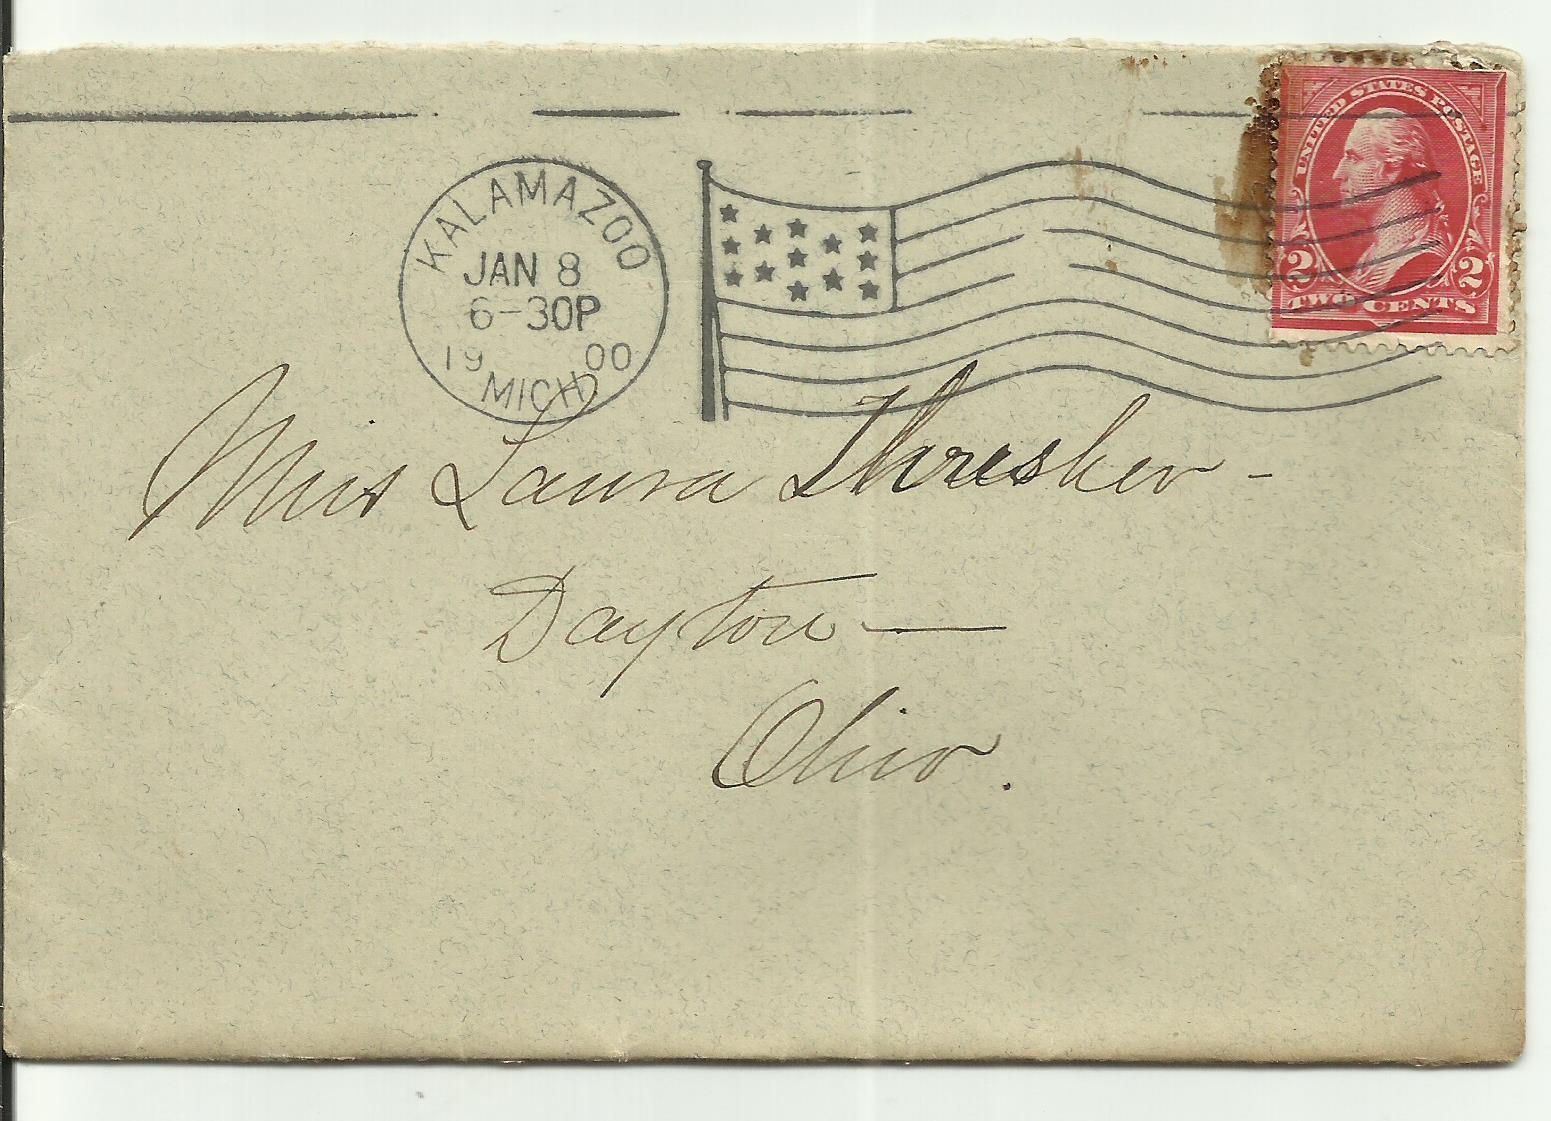 KALAMAZOO, MICH. JANUARY 8, 1900 FLAG CANCEL